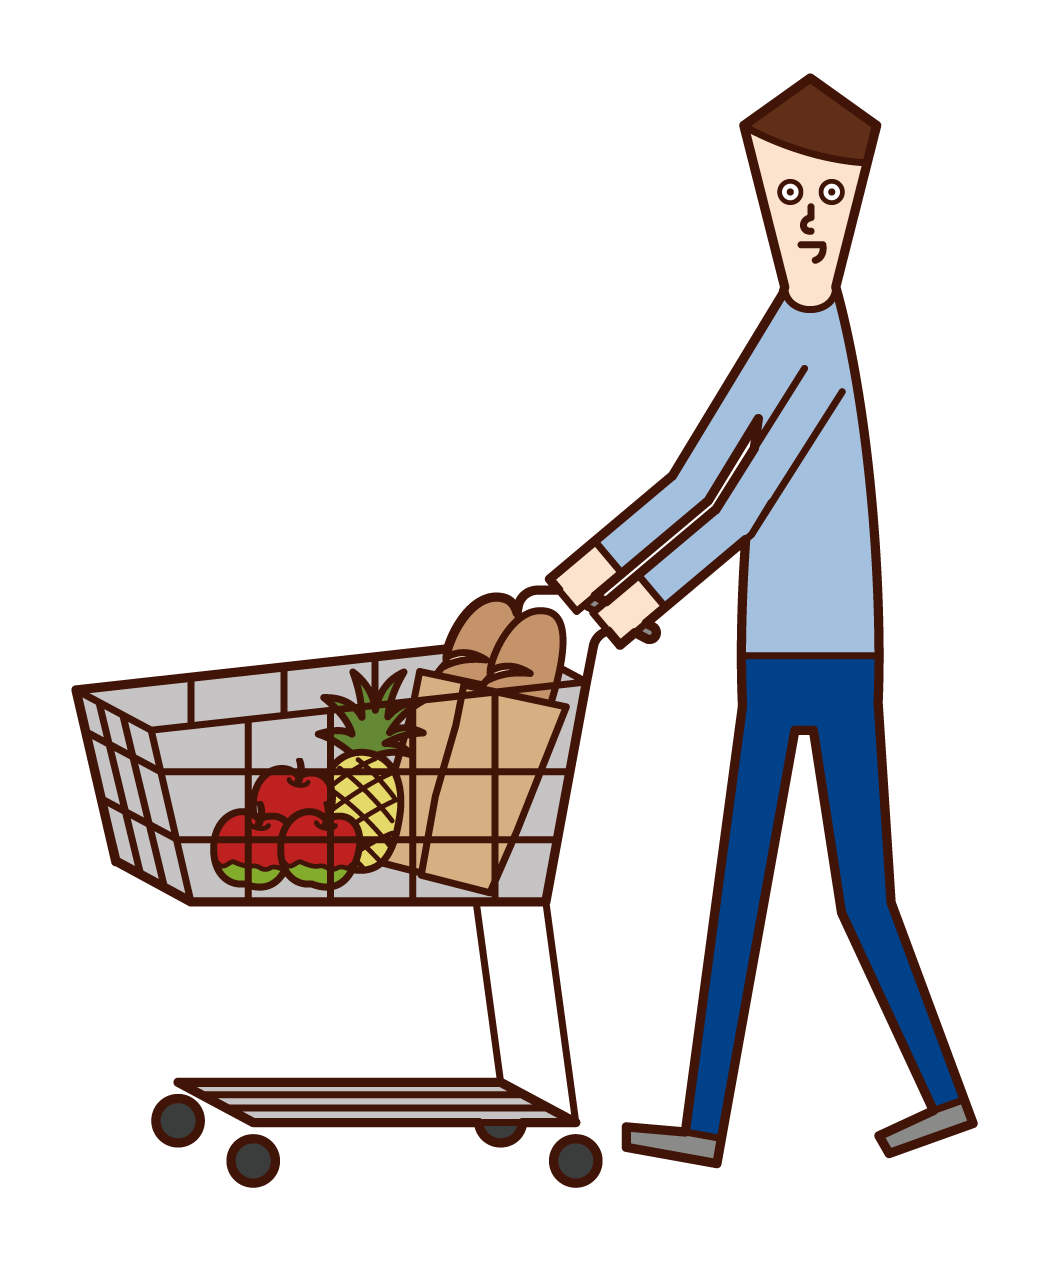 Illustration of a man shopping in a supermarket